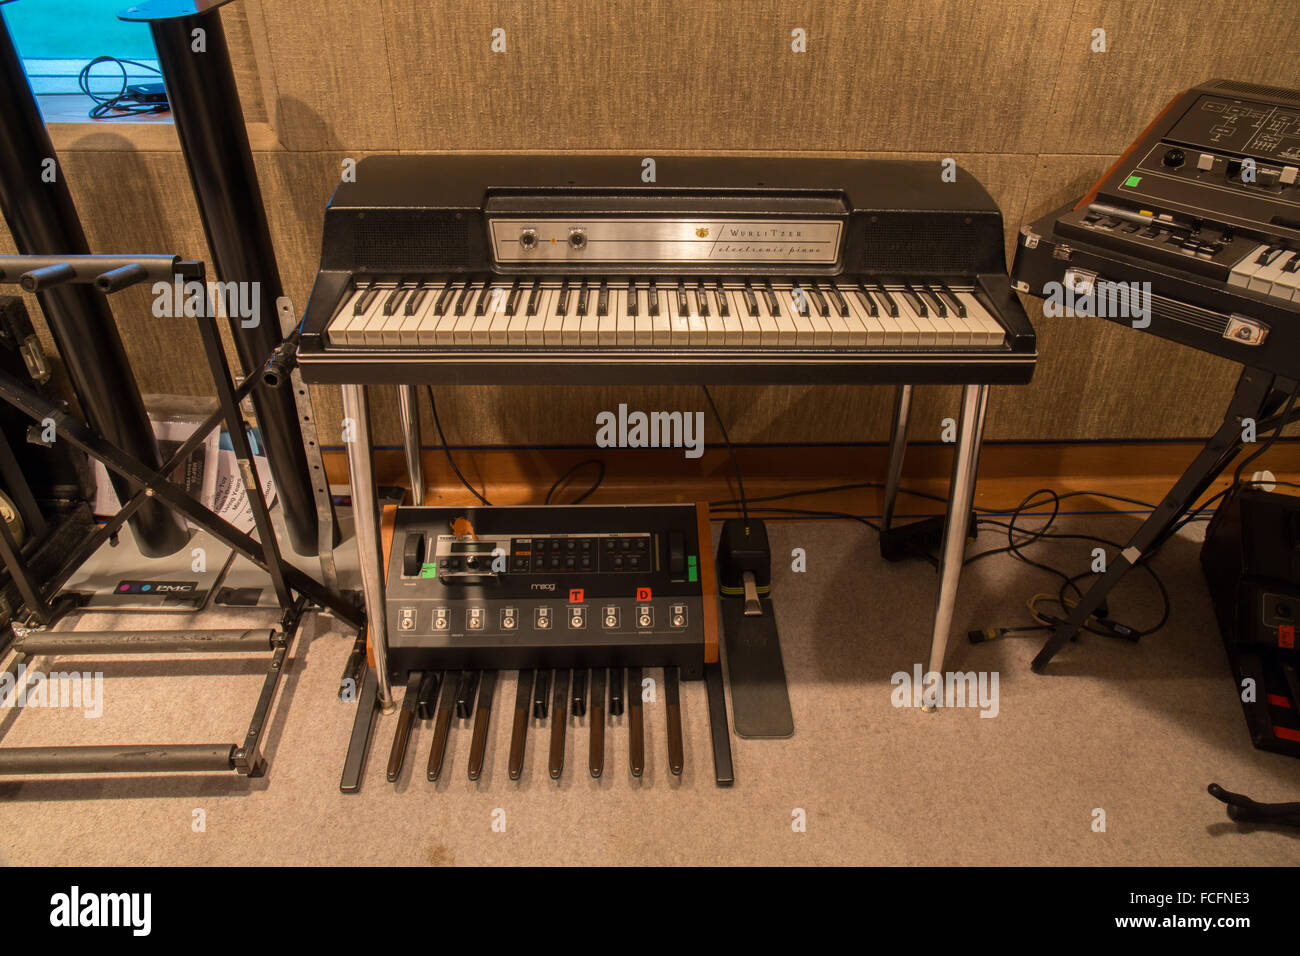 wurlitzer ep 200a electric piano with moog taurus 3 bass pedal synthesizer underneath taken in a recording studio - Stock Image